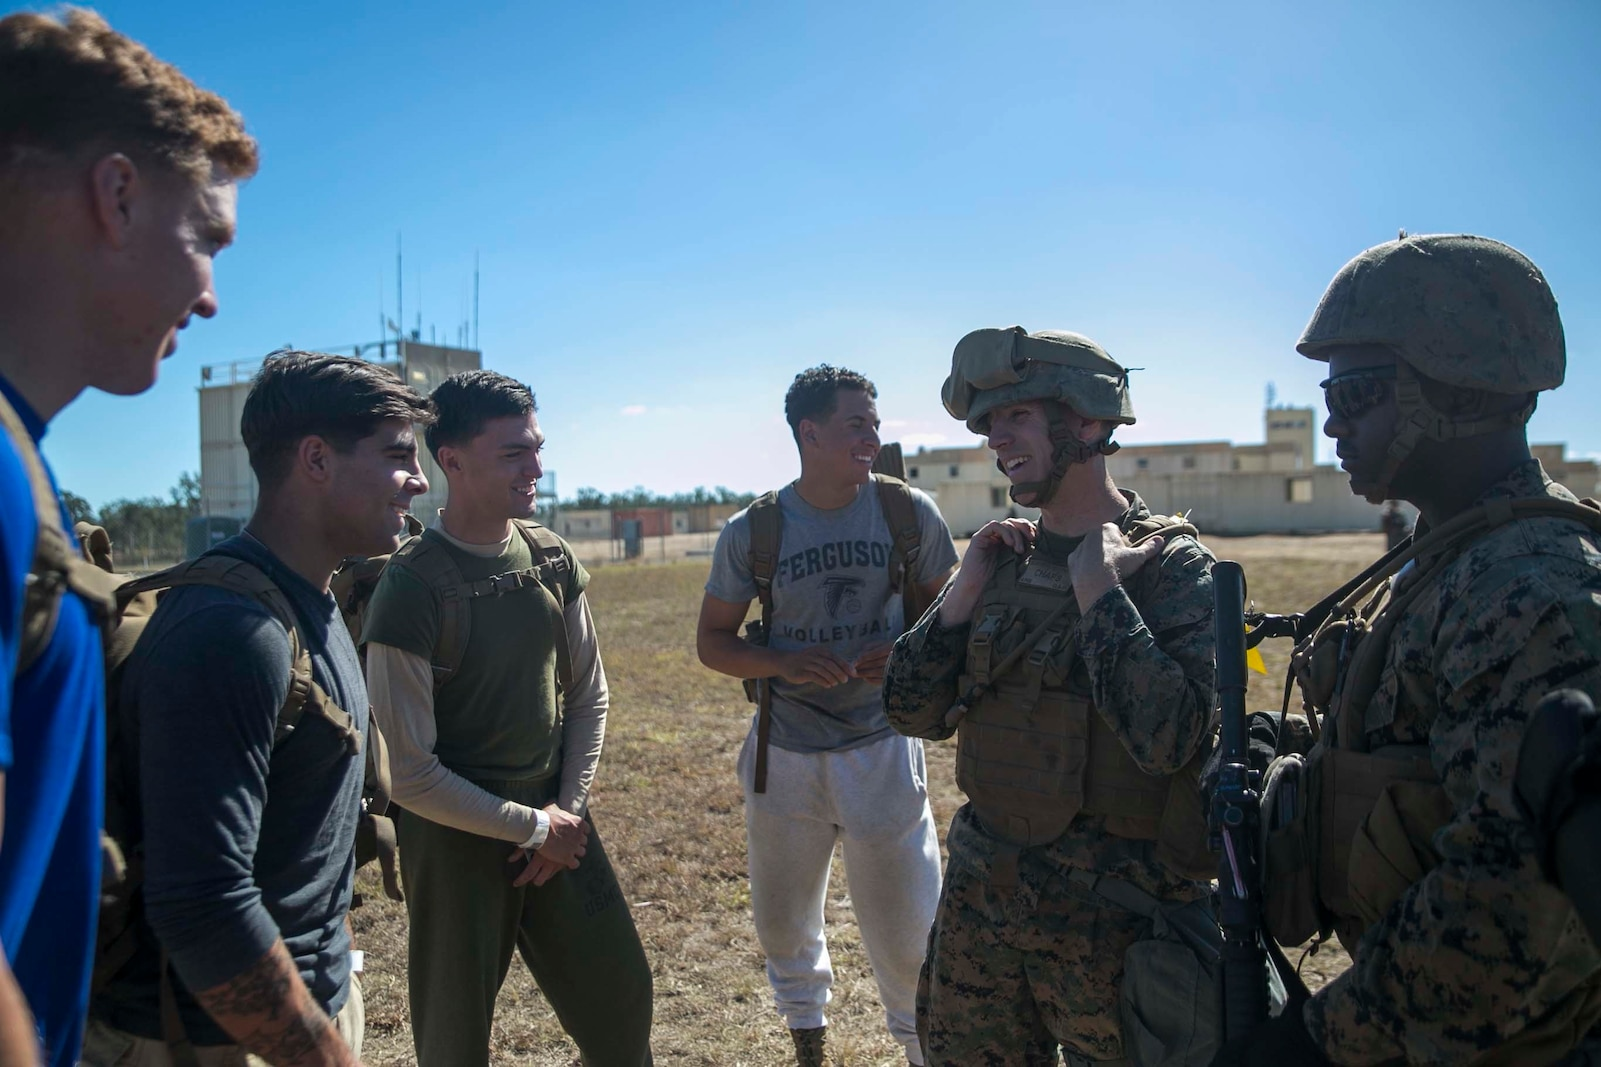 The 31st MEU and PHIBRON 11 combine to provide a cohesive blue-green team capable of accomplishing a variety of missions across the Indo-Asia-Pacific region.